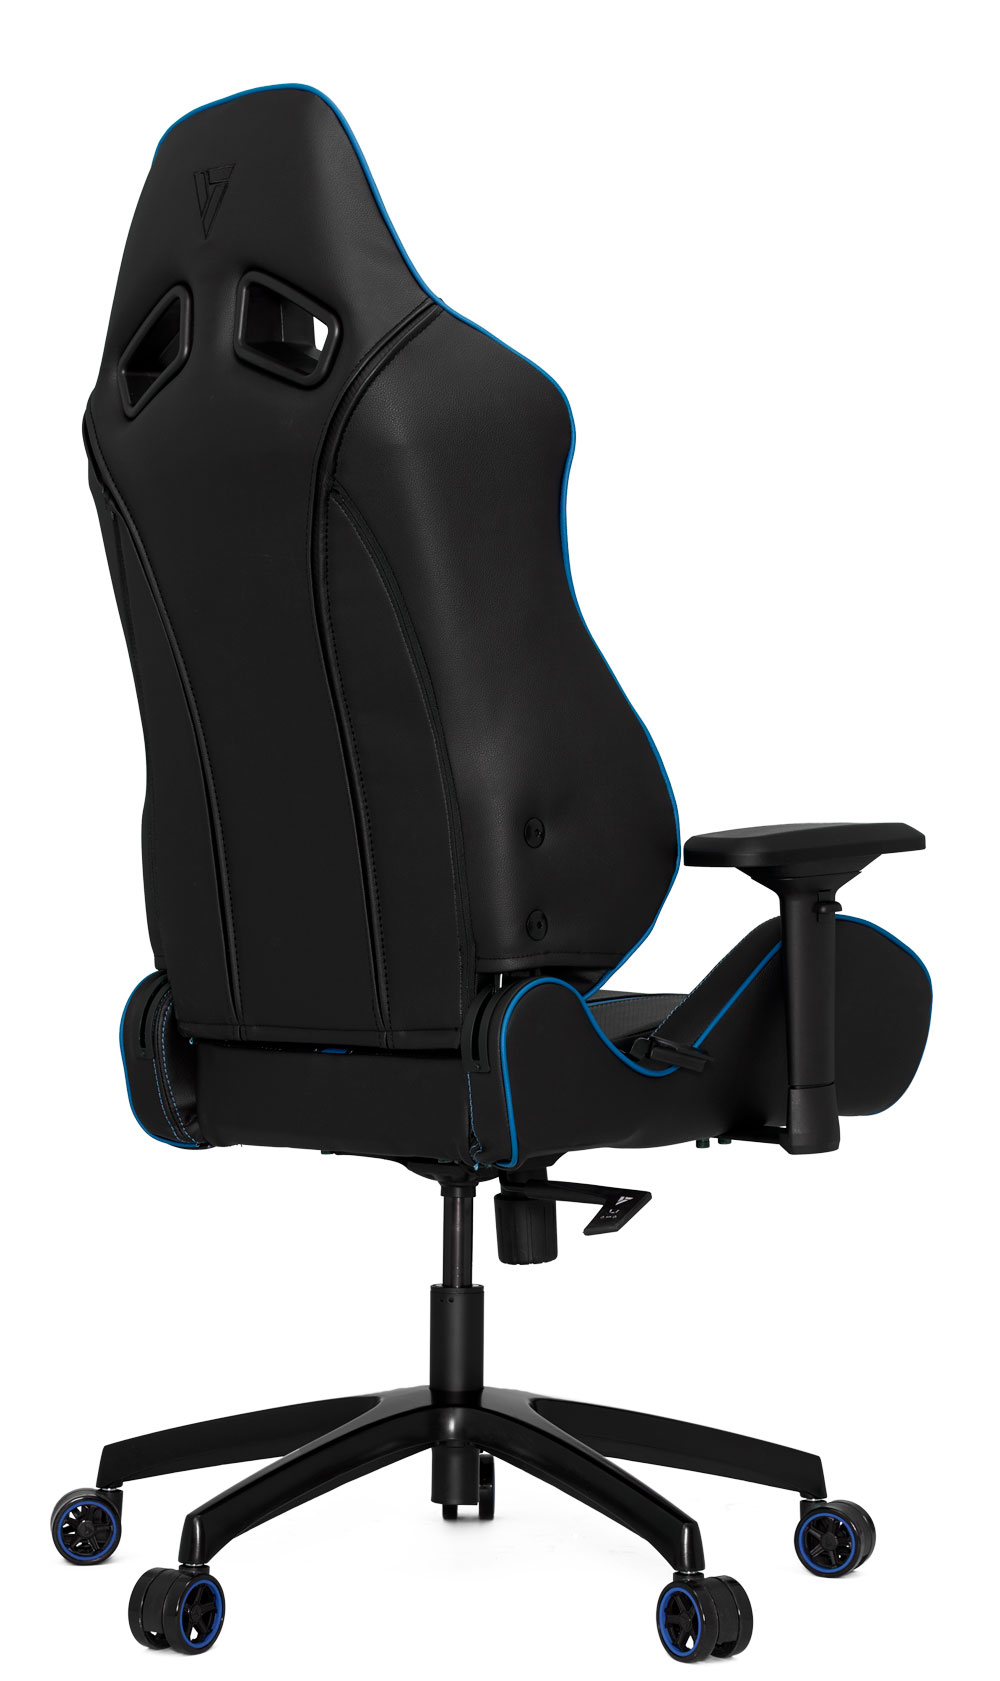 Ultimate game chair v3 -  Vertagear Sl5000 Gaming Chair Black Blue